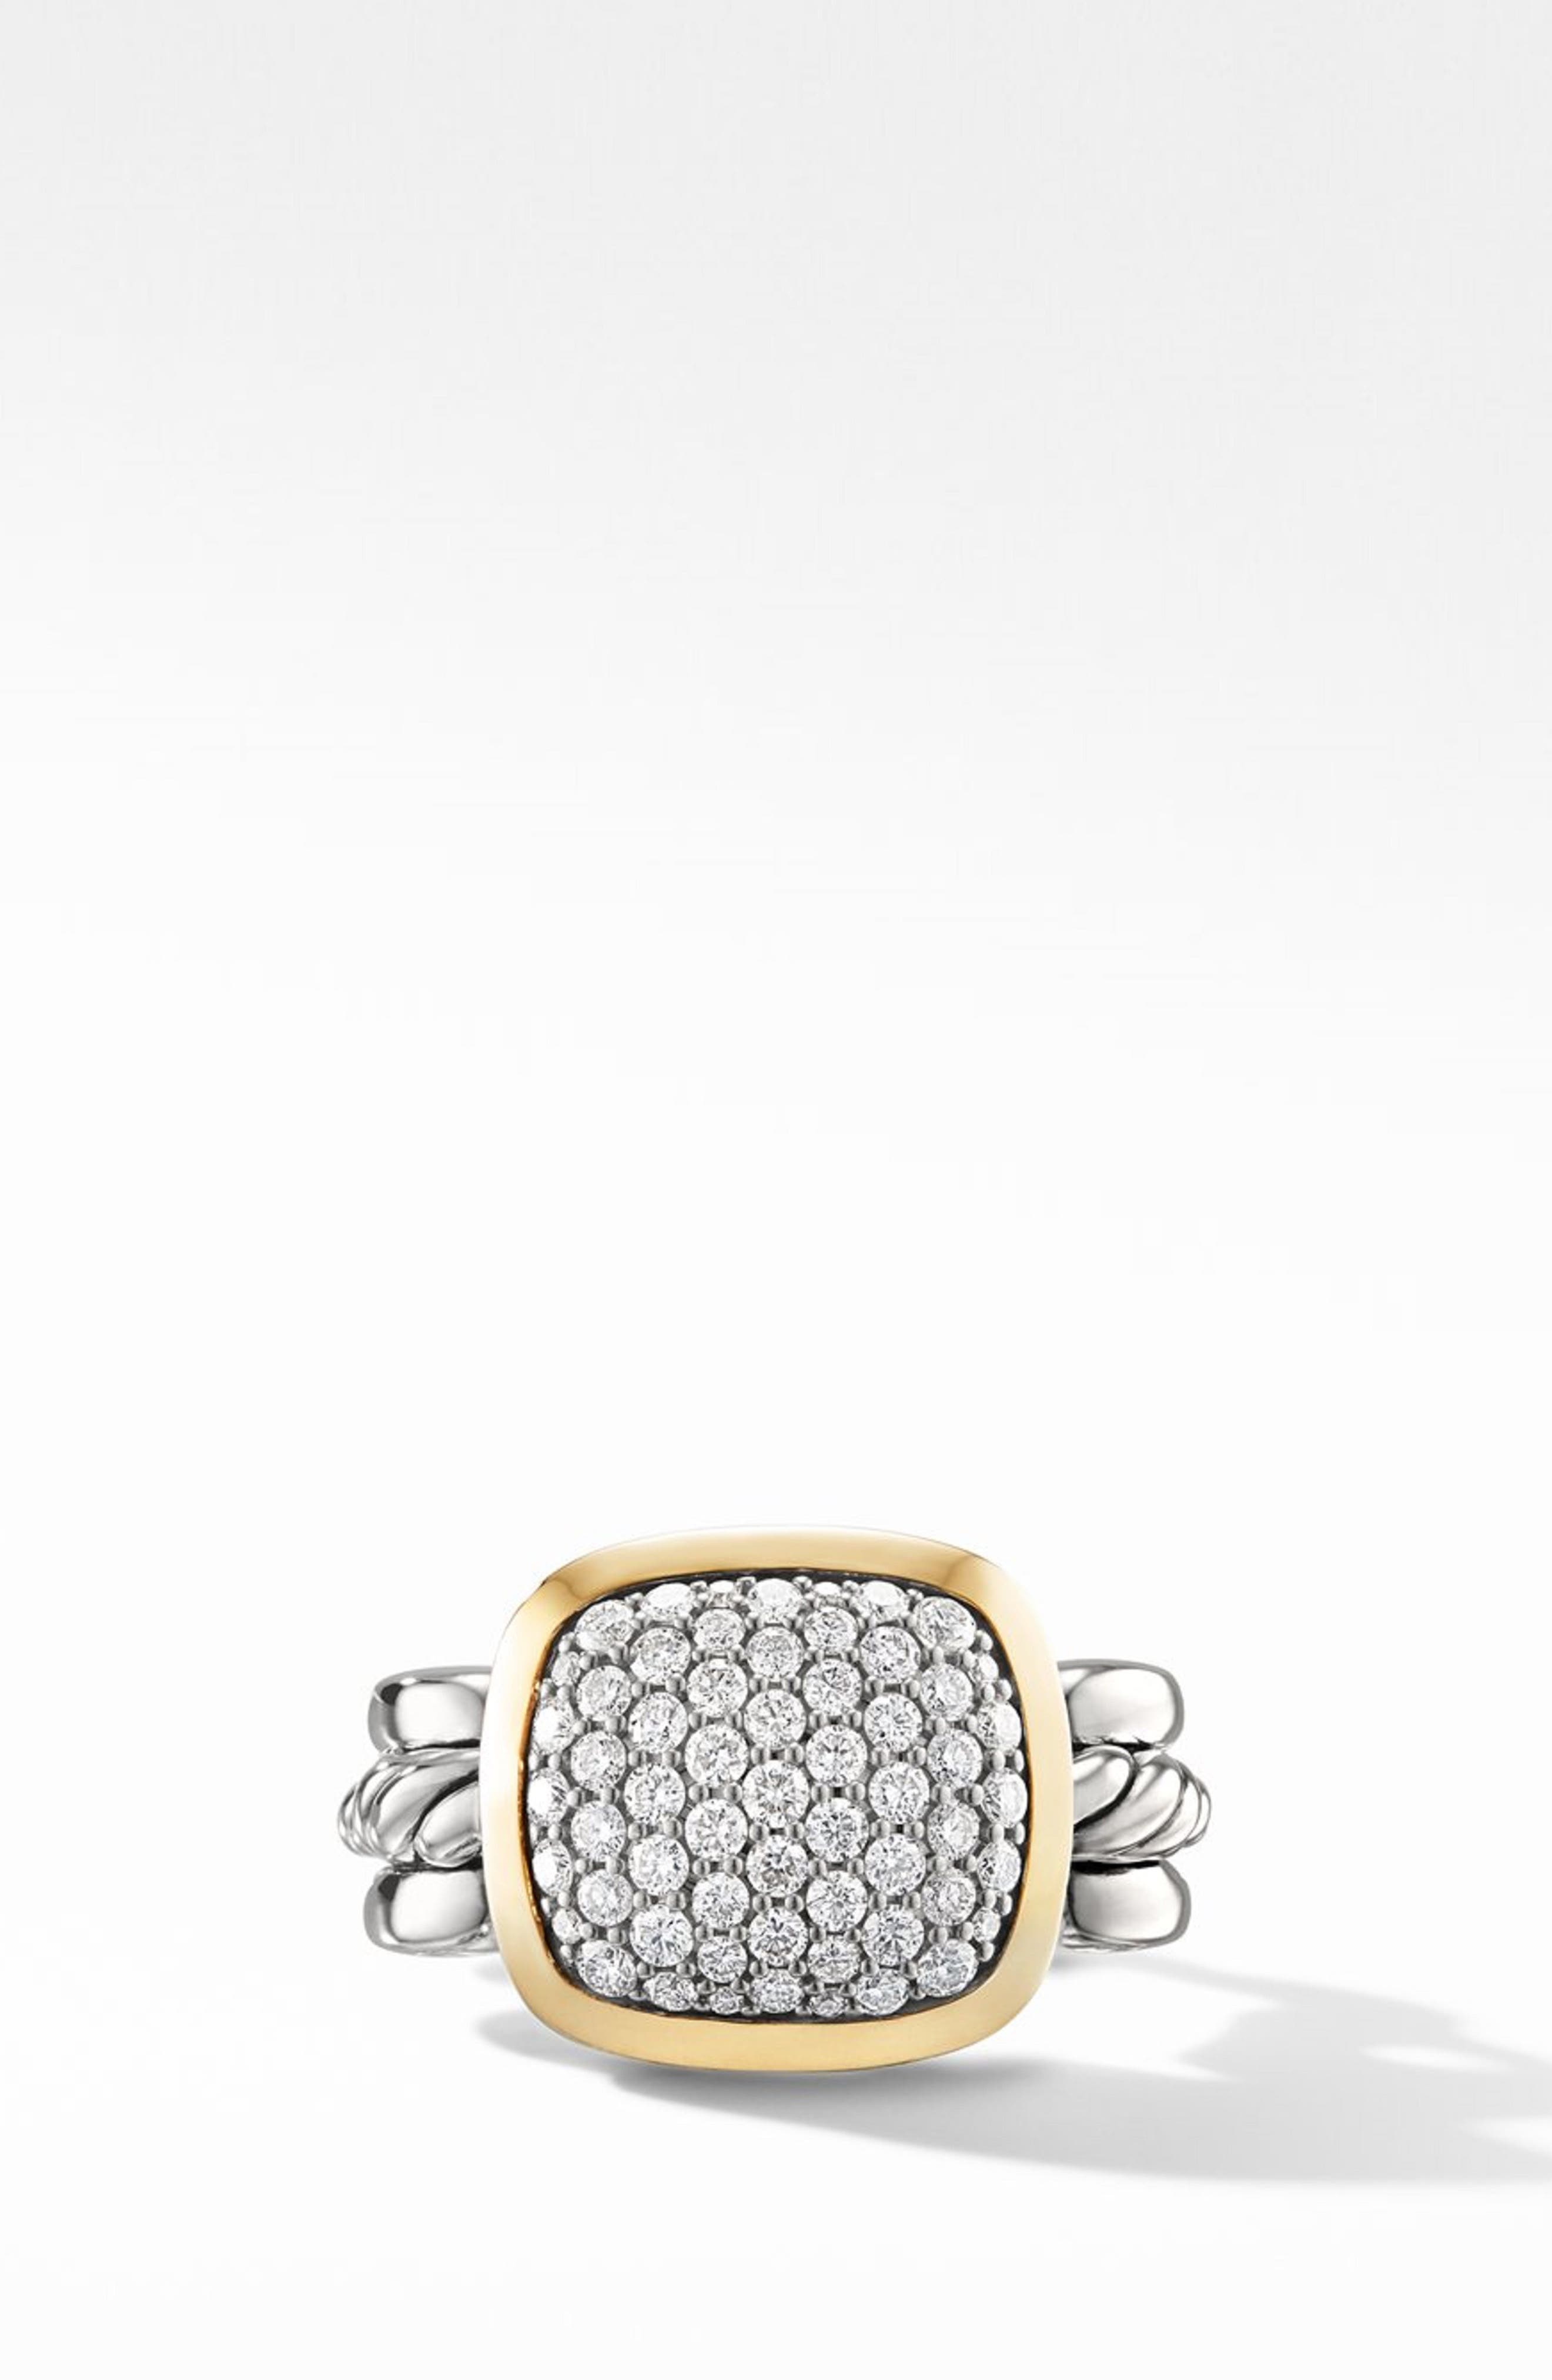 Wellesley Link Statement Ring with 18k Gold & Diamonds,                             Alternate thumbnail 2, color,                             SILVER/ DIAMOND